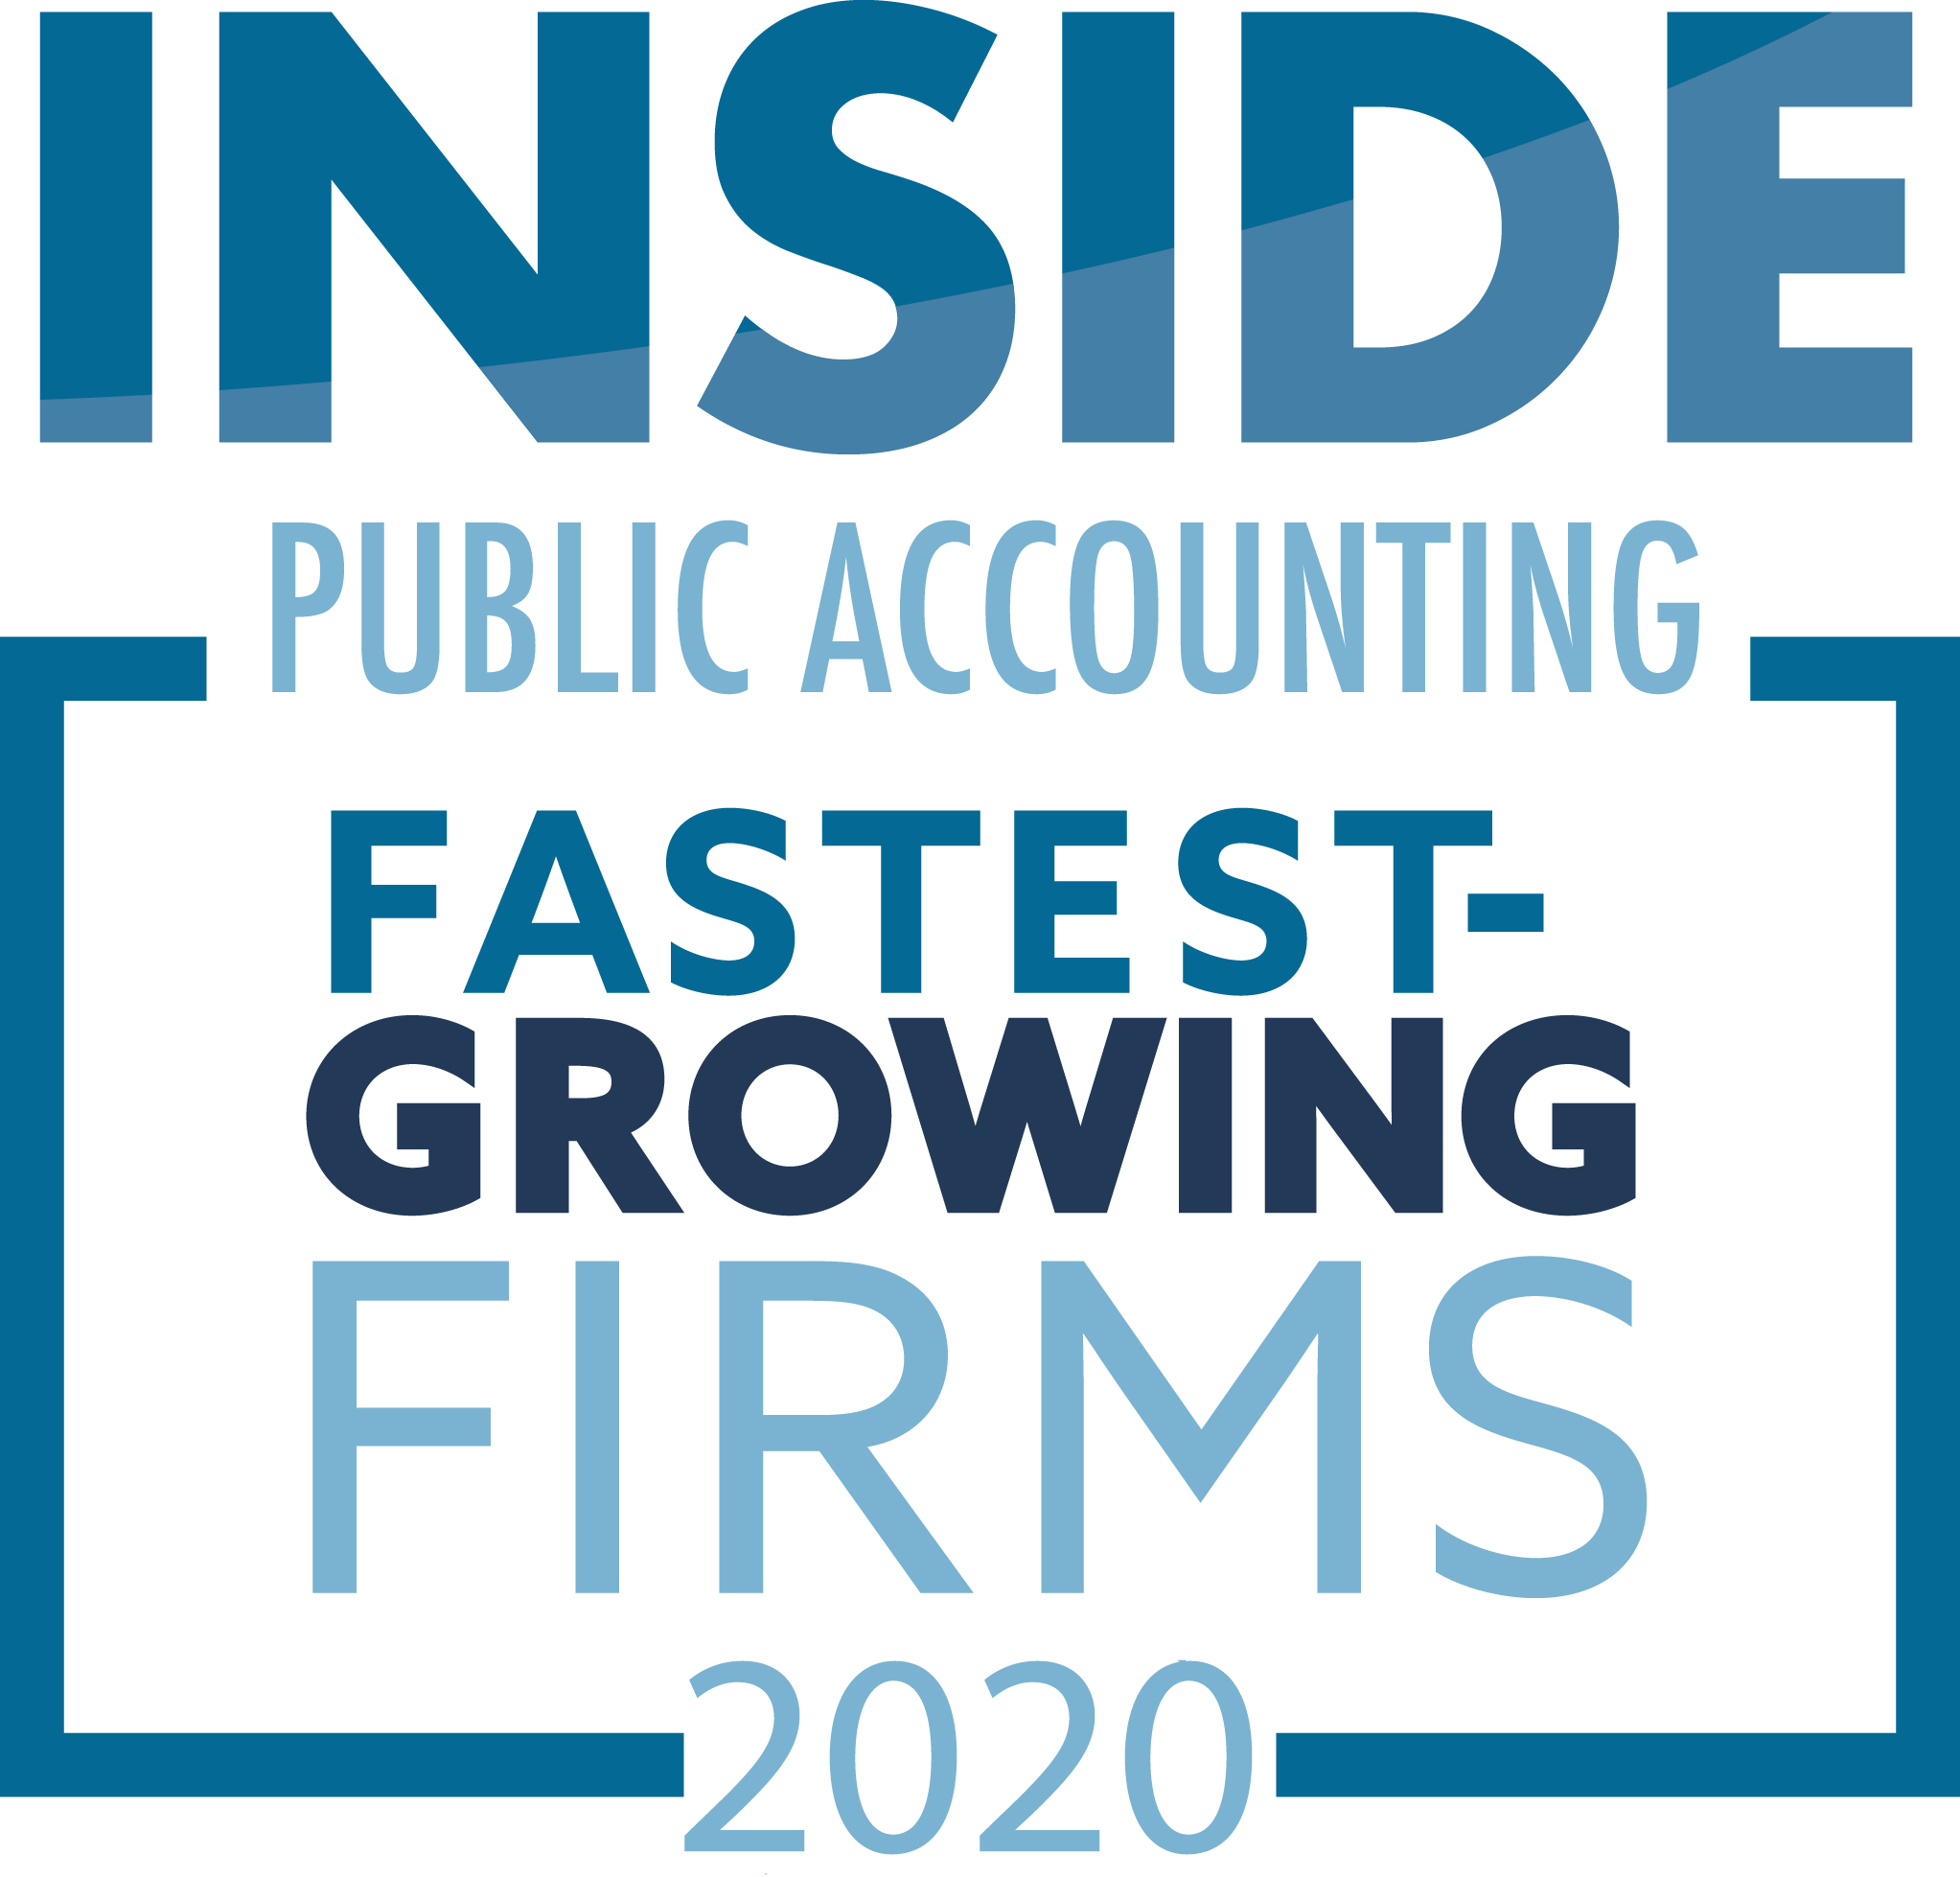 inside-public-accounting-fastest-growing-firms-2020